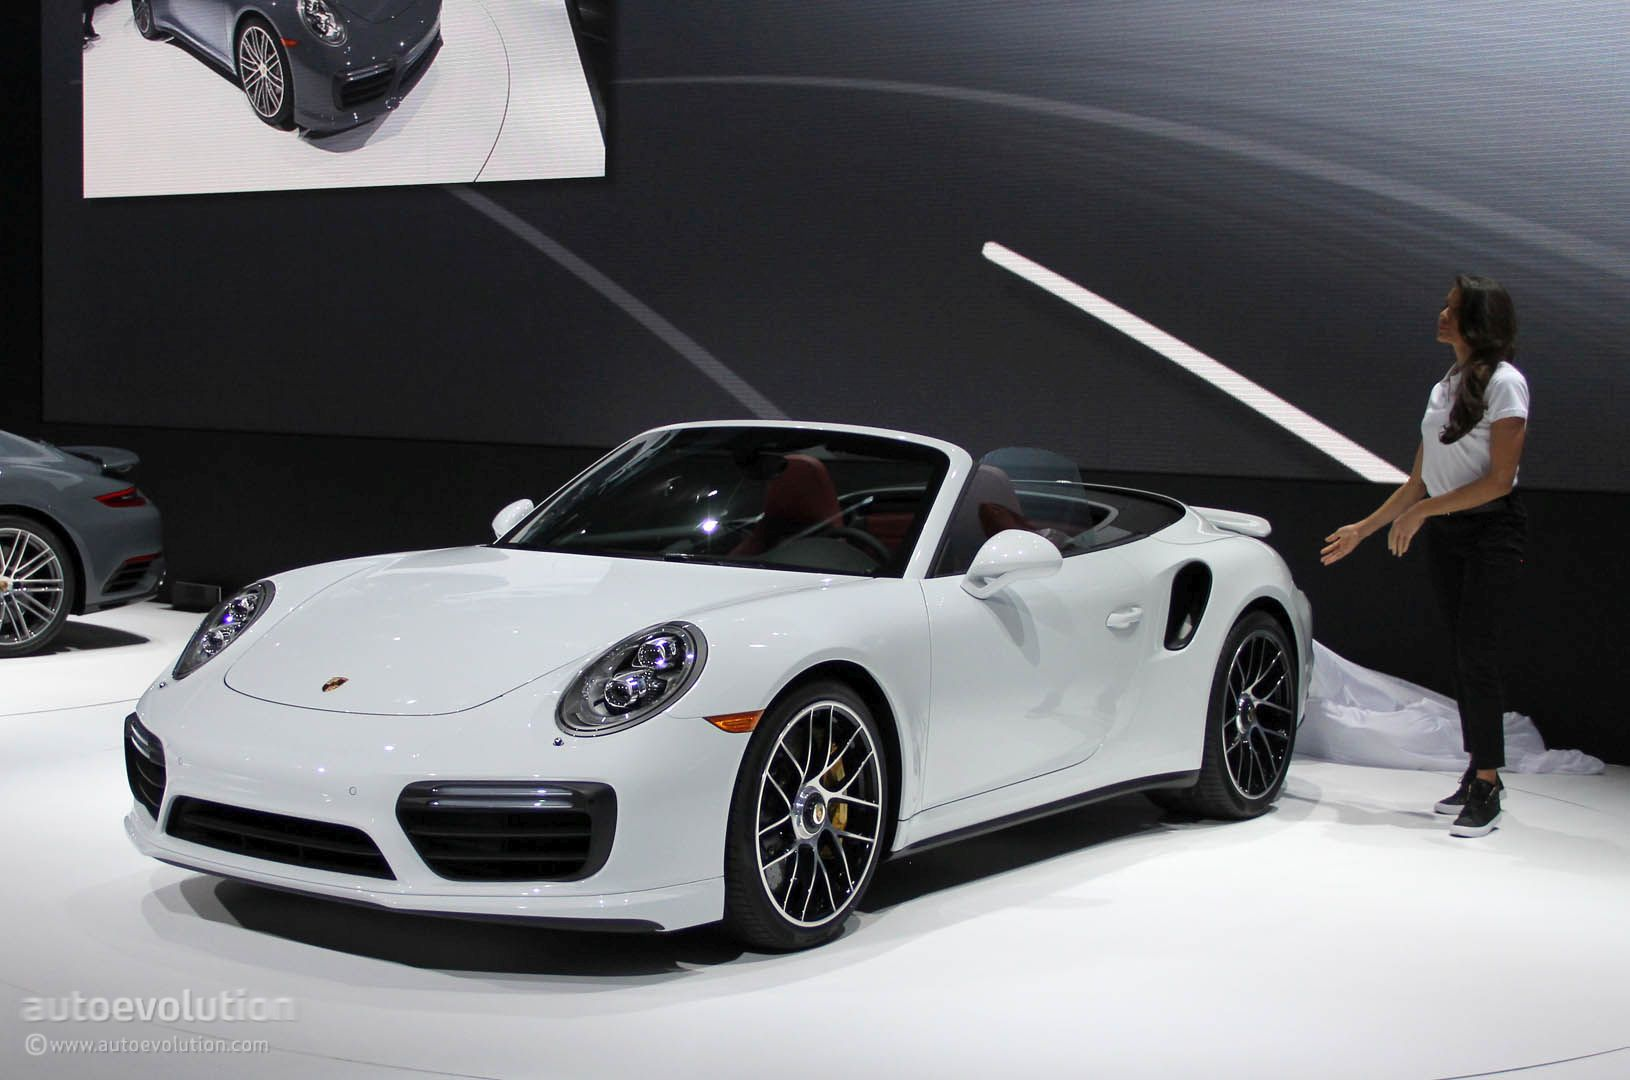 A Porsche 911 Plug-In Hybrid Might Be Coming, but No ...